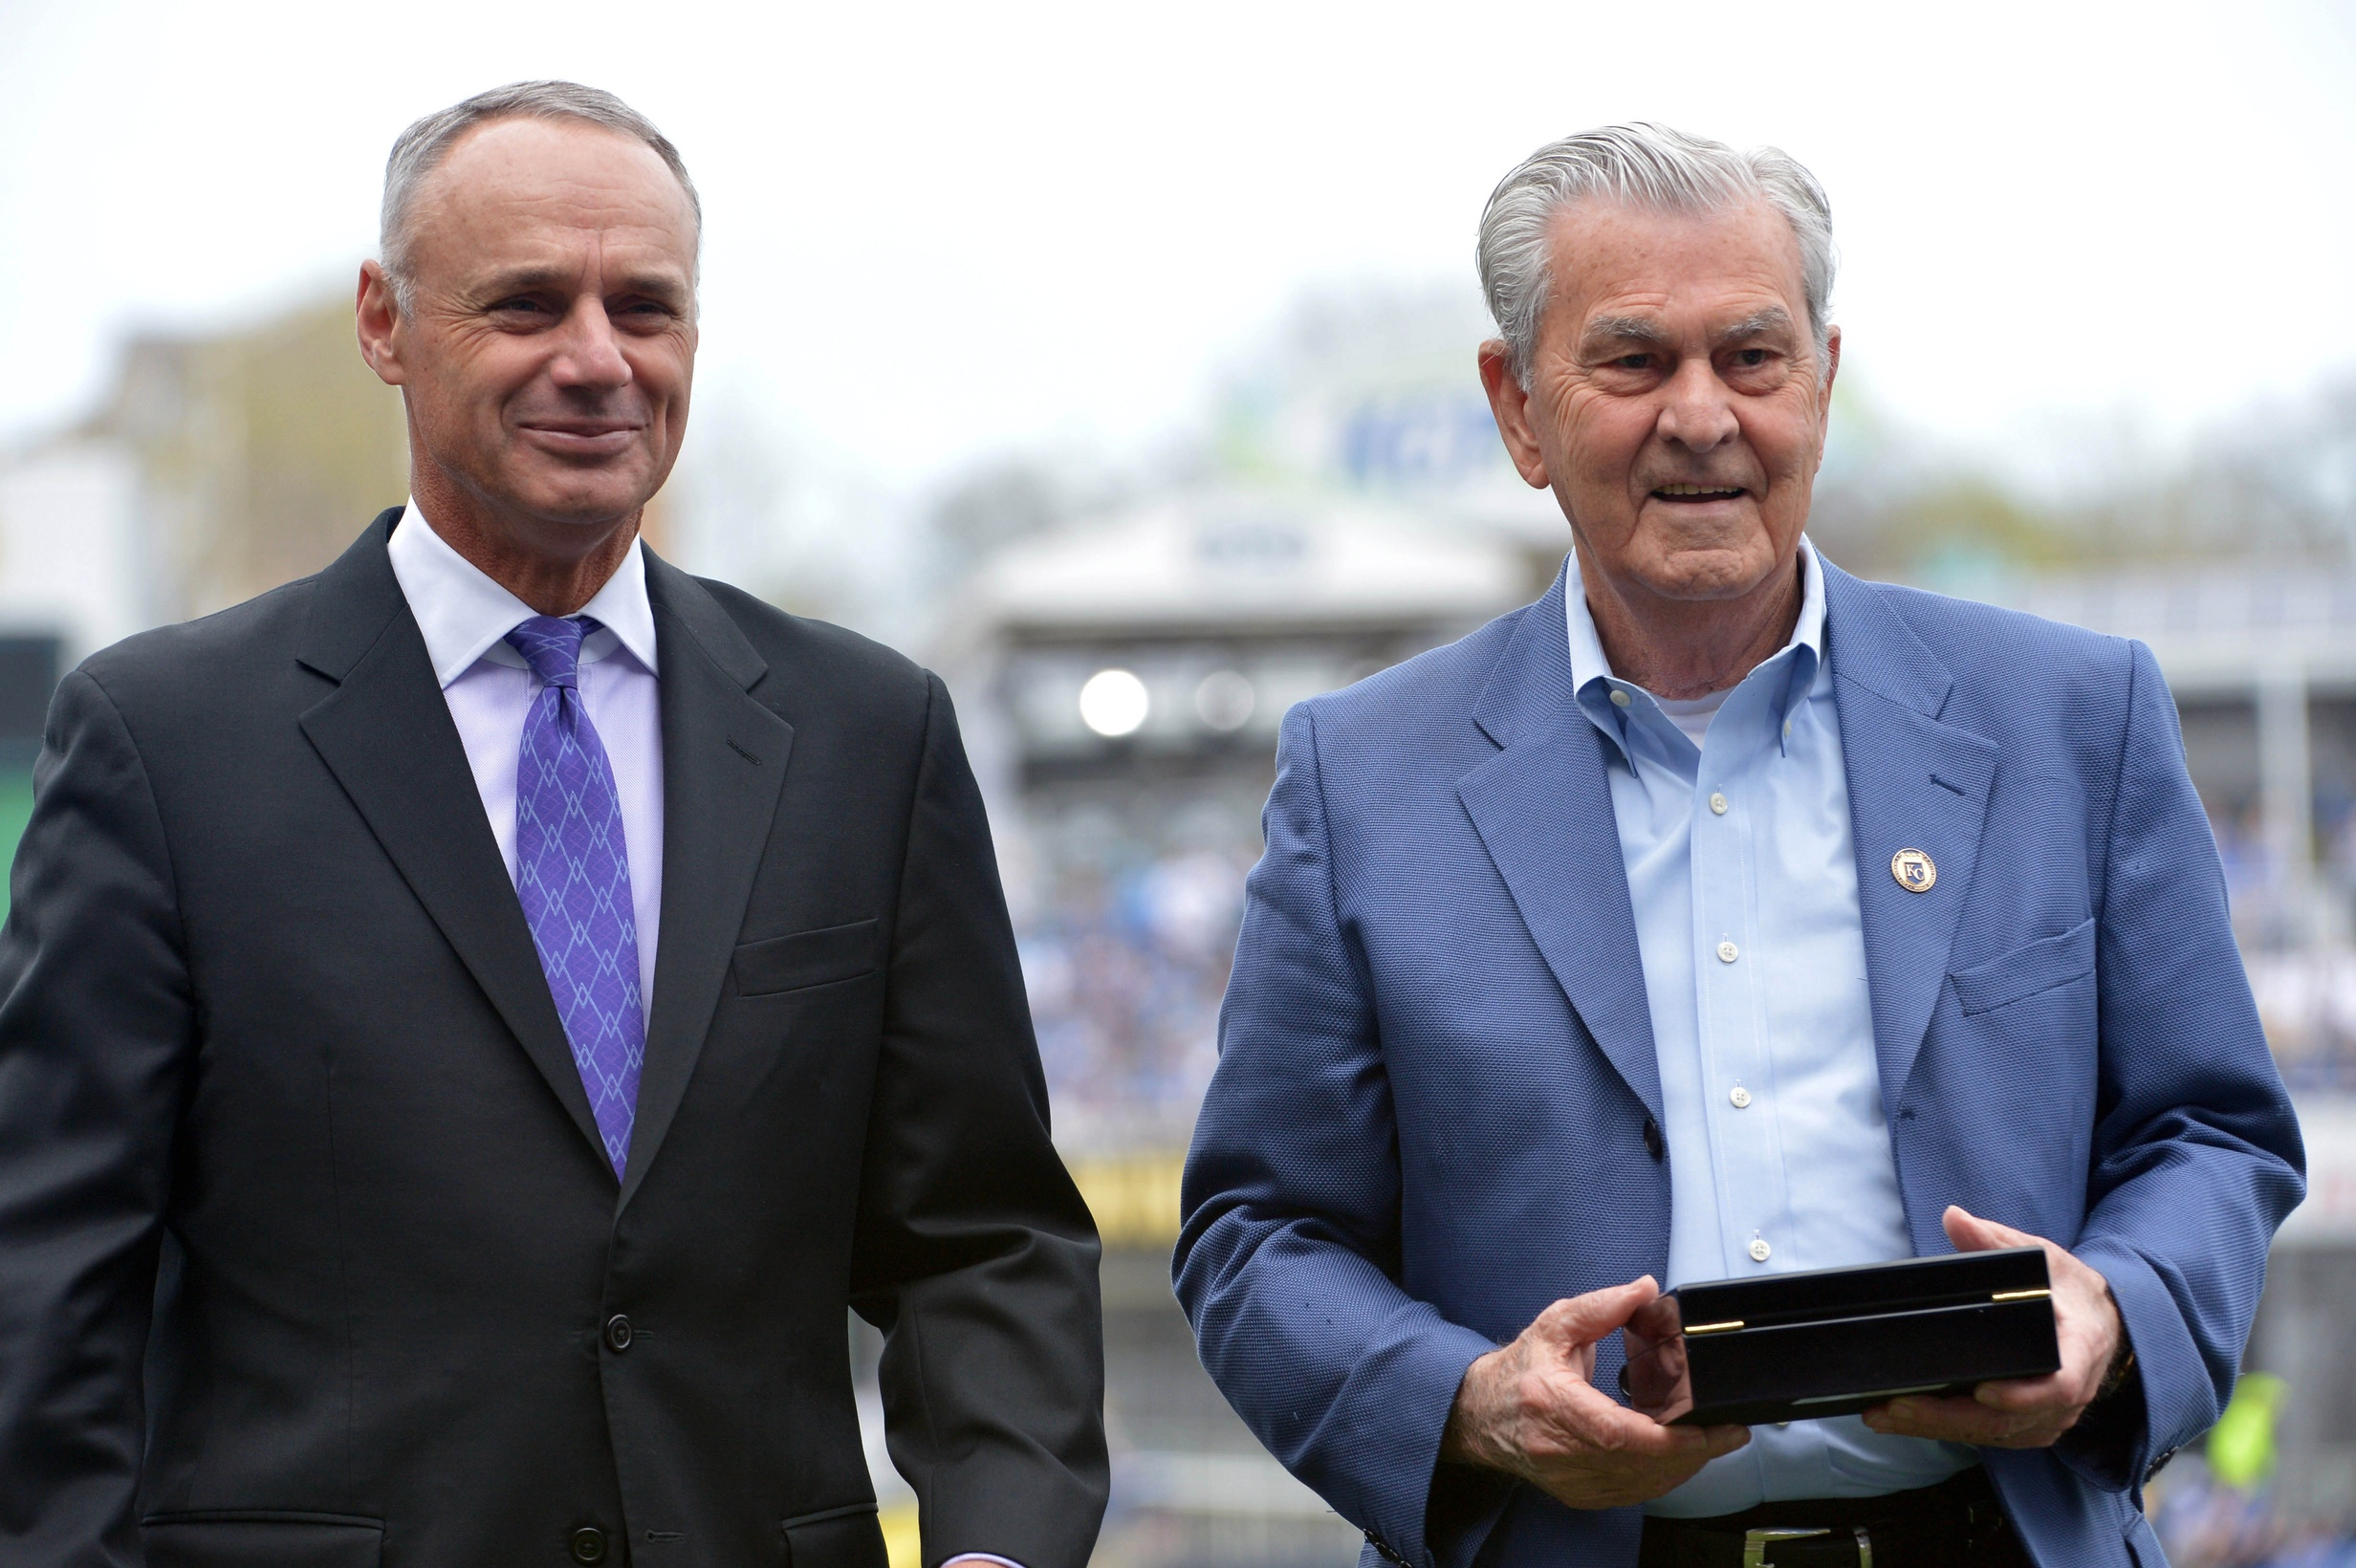 Apr 5, 2016; Kansas City, MO, USA; Major League Baseball commissioner Rob Manfred presents Kansas City Royals owner David Glass (right) his championship ring before the game against the New York Mets at Kauffman Stadium. Mandatory Credit: Denny Medley-USA TODAY Sports